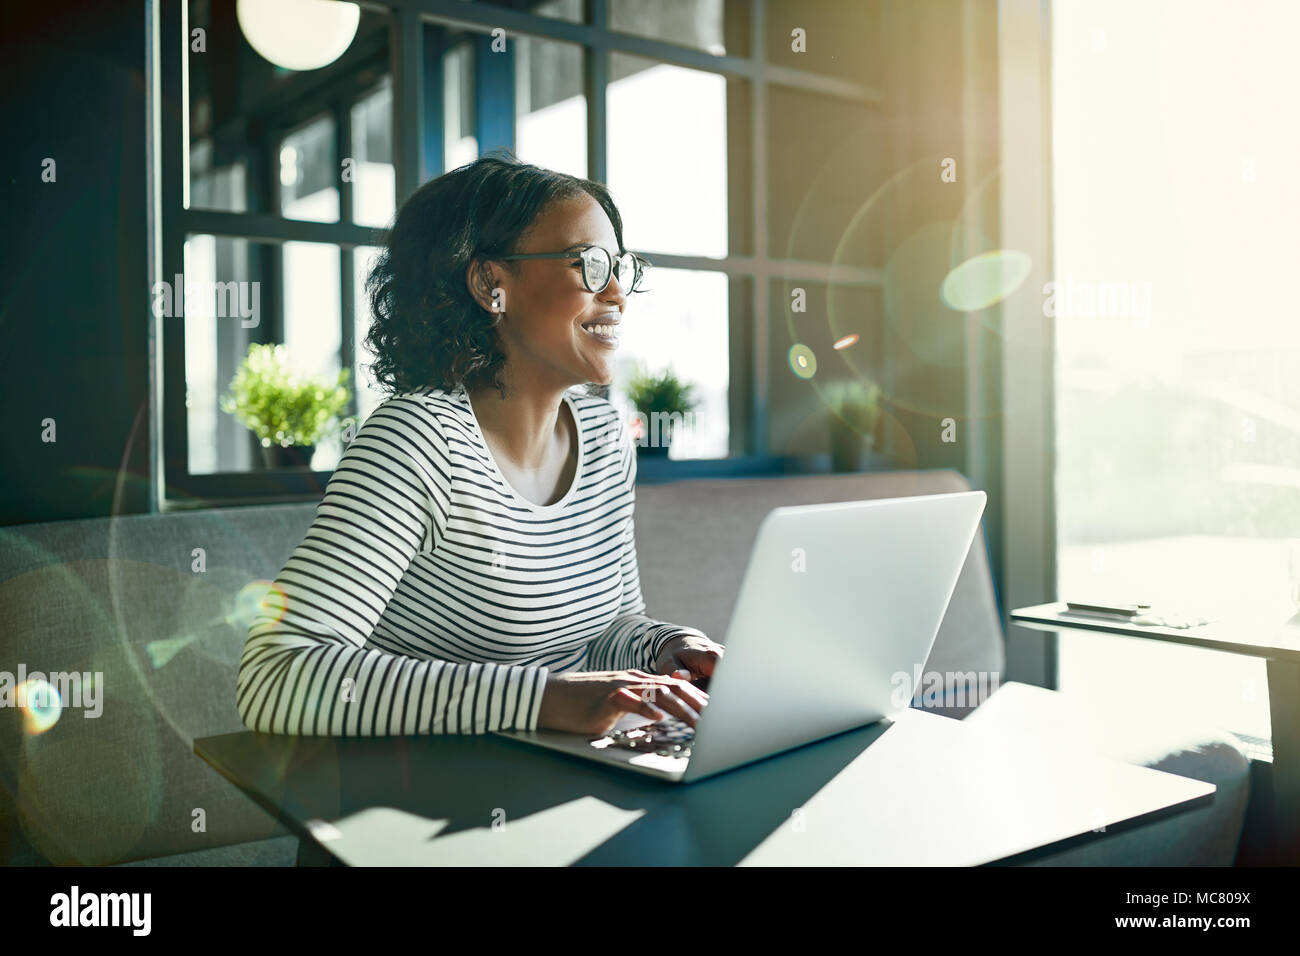 Smiling young African woman wearing glasses looking out of a window while sitting at a table working online with a laptop - Stock Image